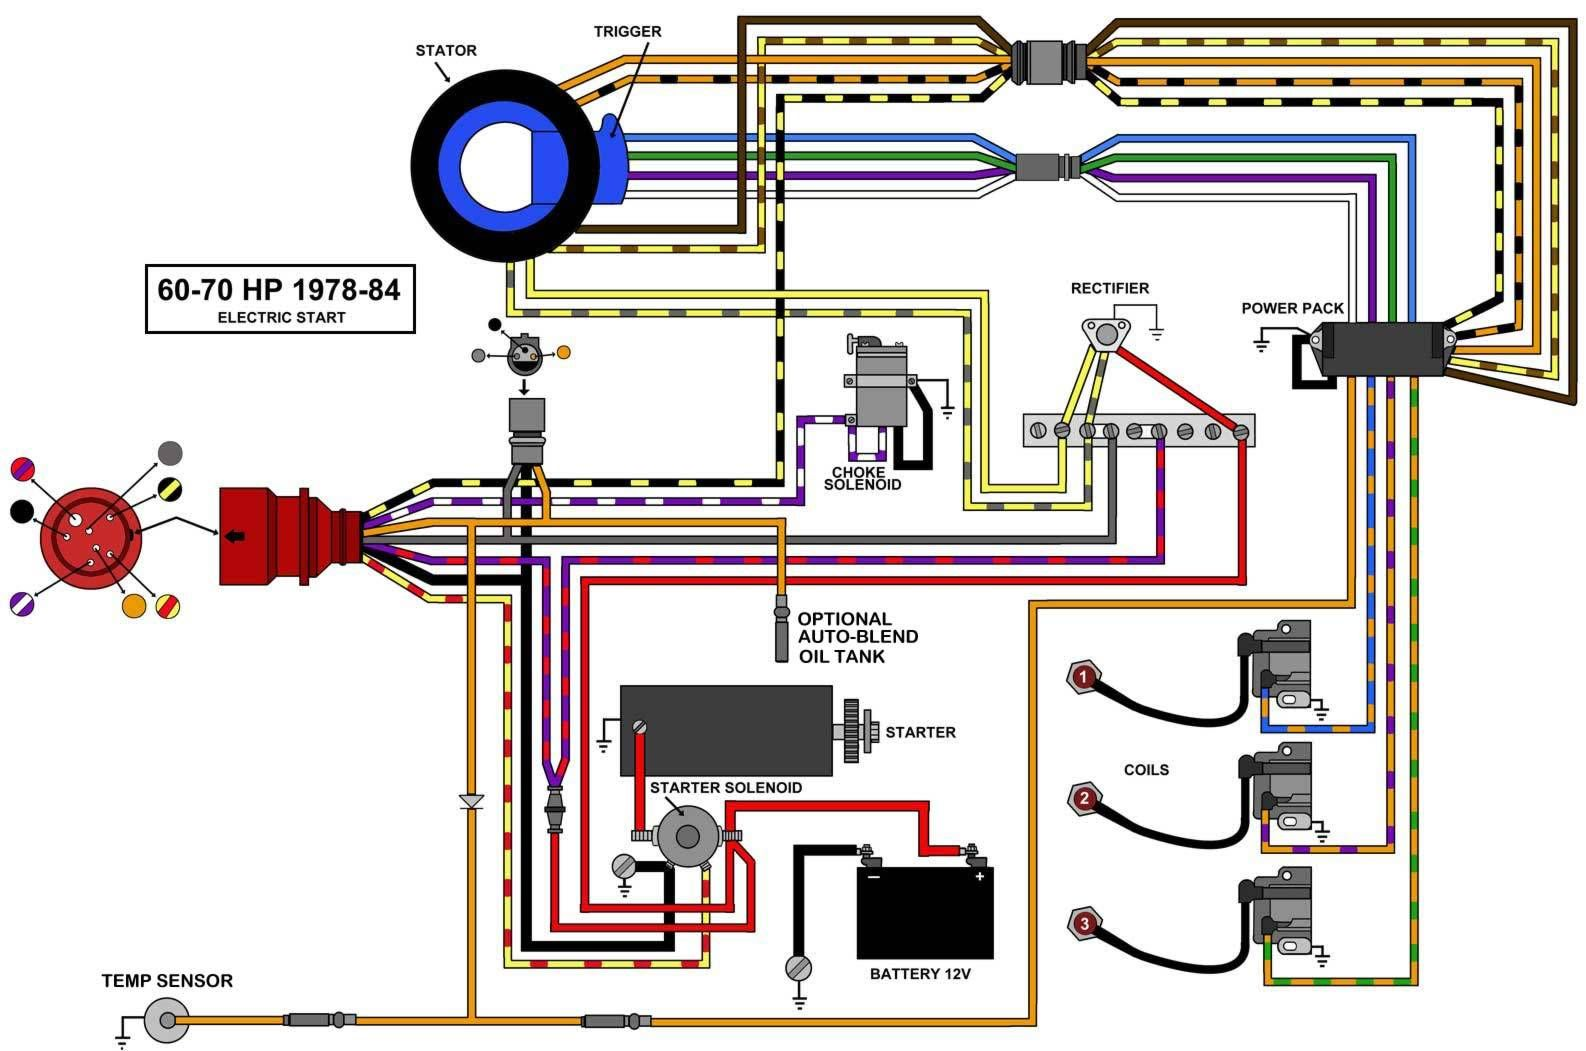 Evinrude Ignition Switch Wiring Diagram Outboard Motors Outboard Trailer Light Wiring